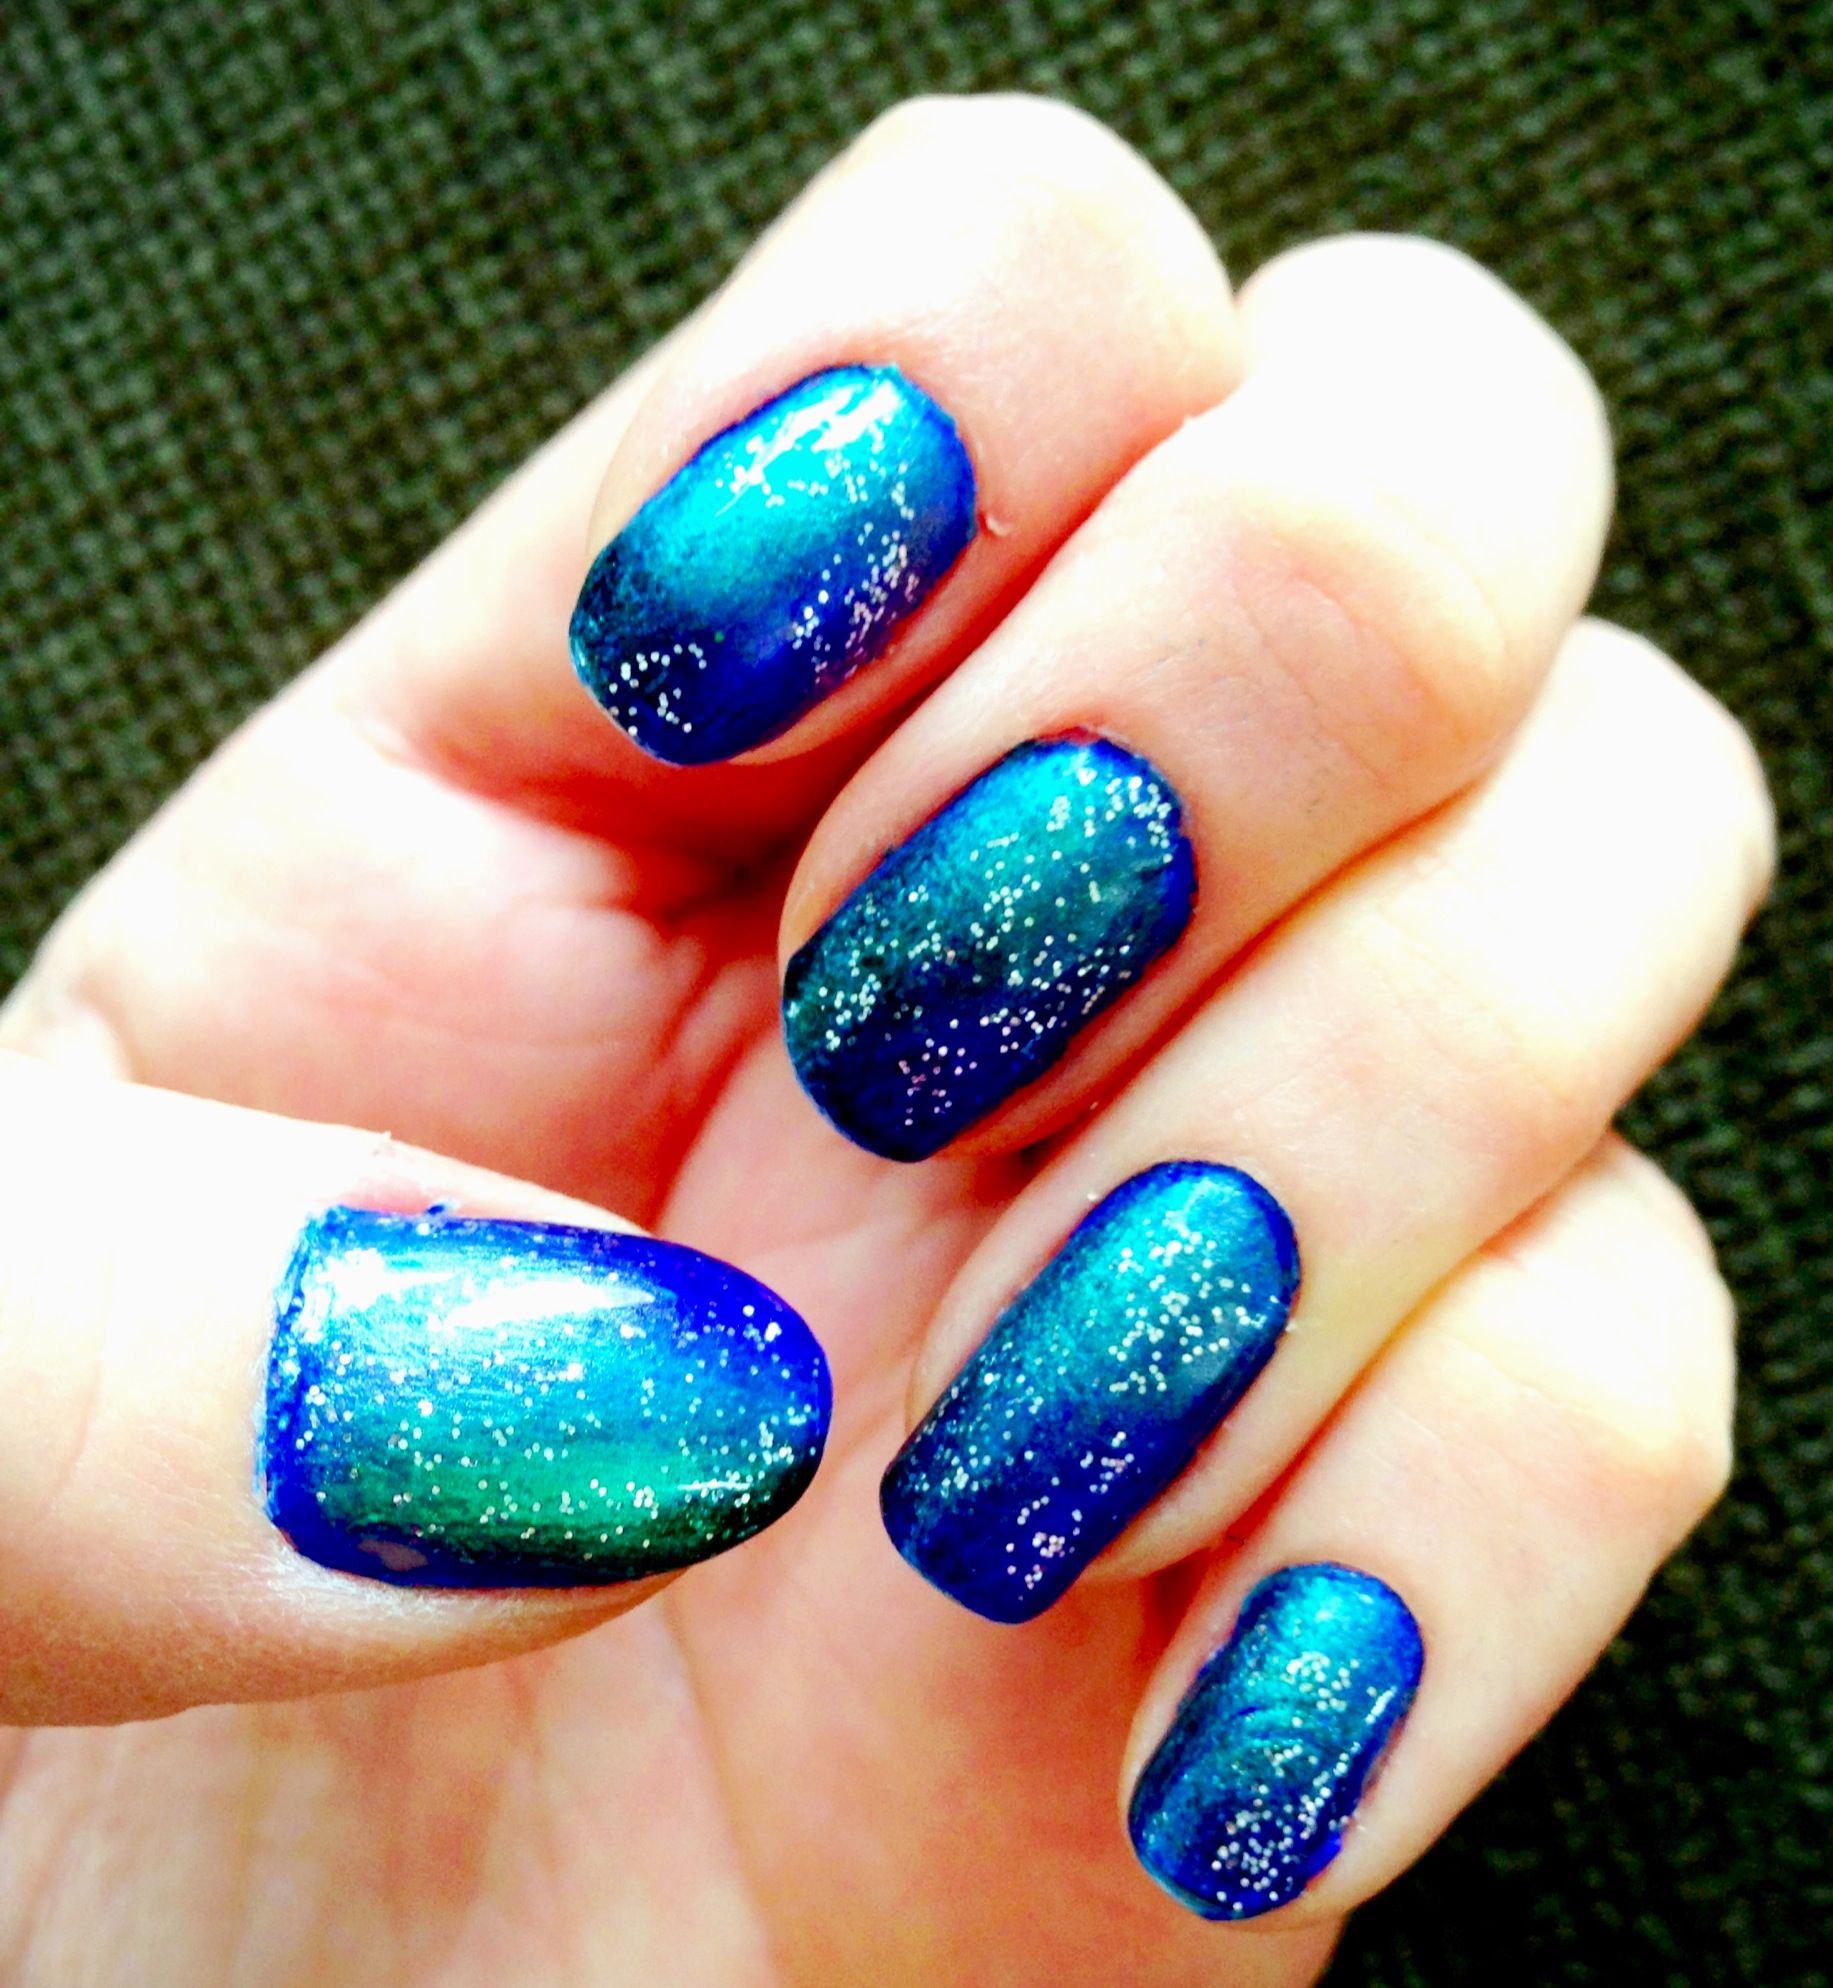 Tutorial - Starry Starry Night (A.K.A. Galaxy Nails) - Nails For Nickels